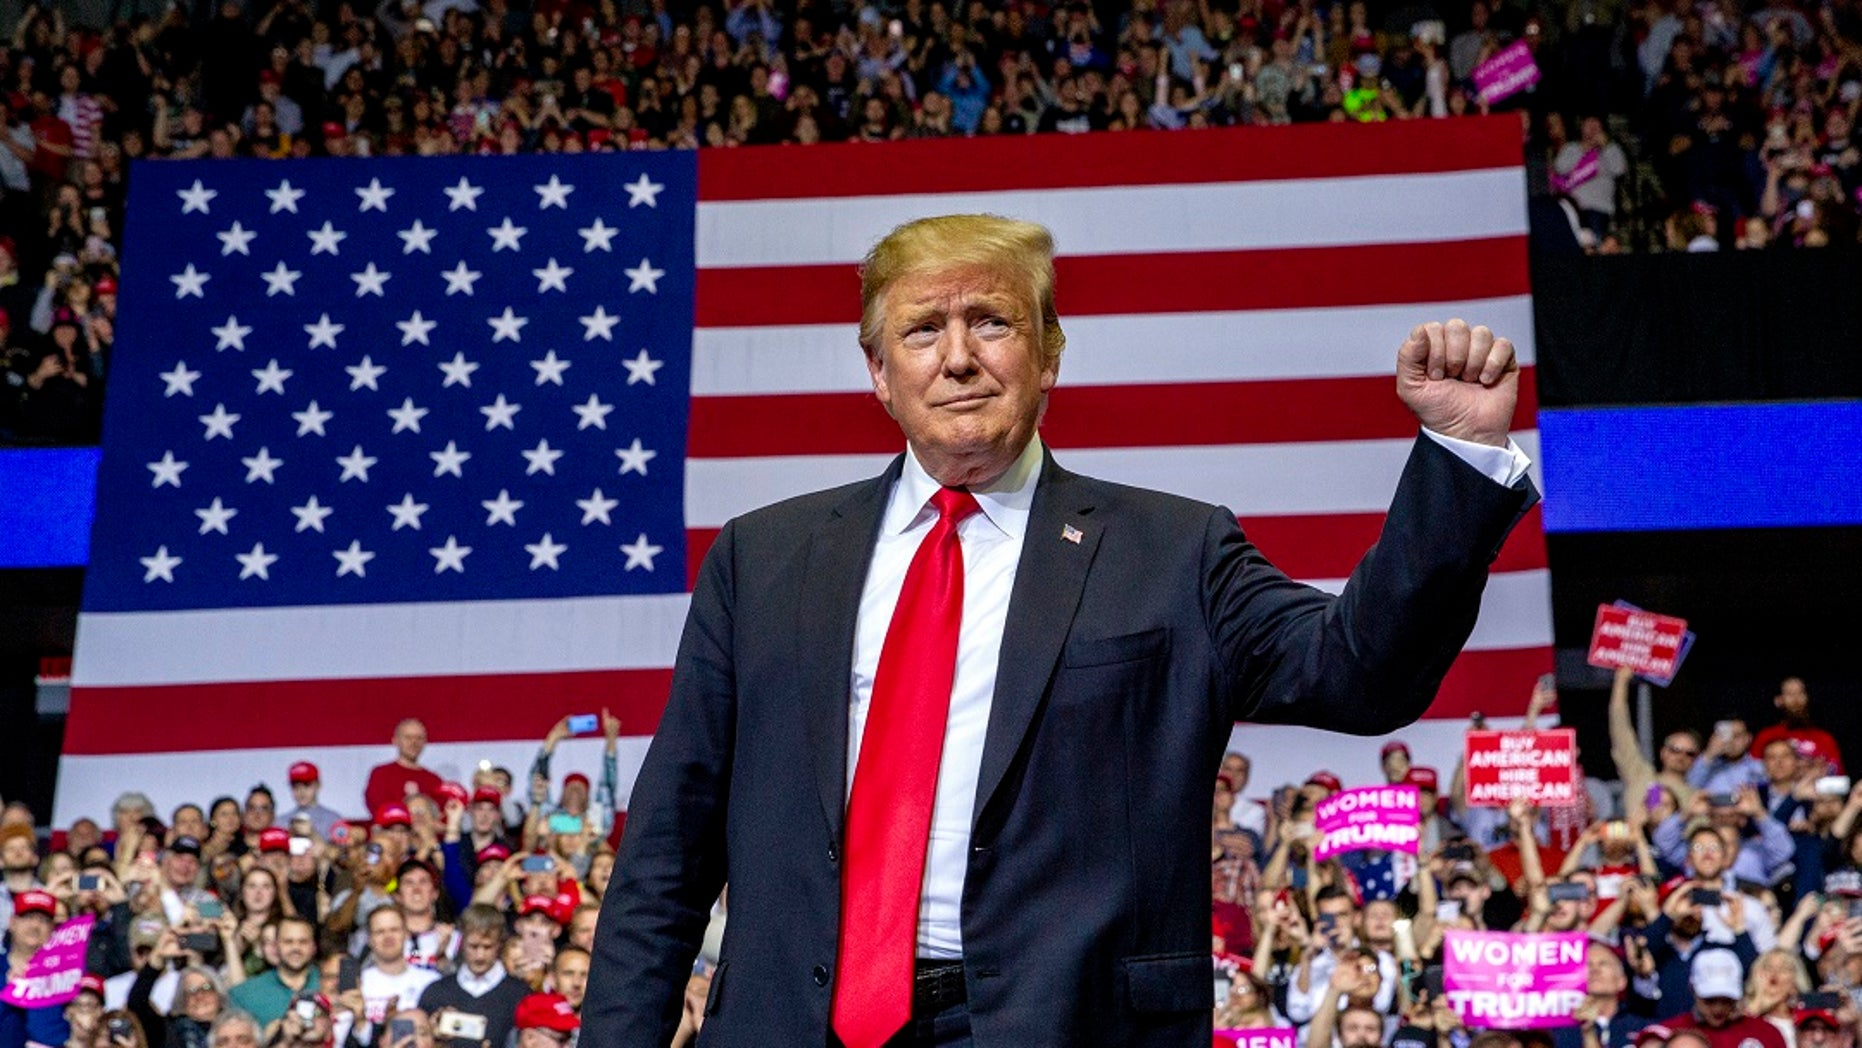 President Donald Trump gestures at a campaign rally at Van Andel Arena in Grand Rapids, Mich., on Thursday, March 28, 2019. (Cory Morse/MLive.com/The Grand Rapids Press via AP)